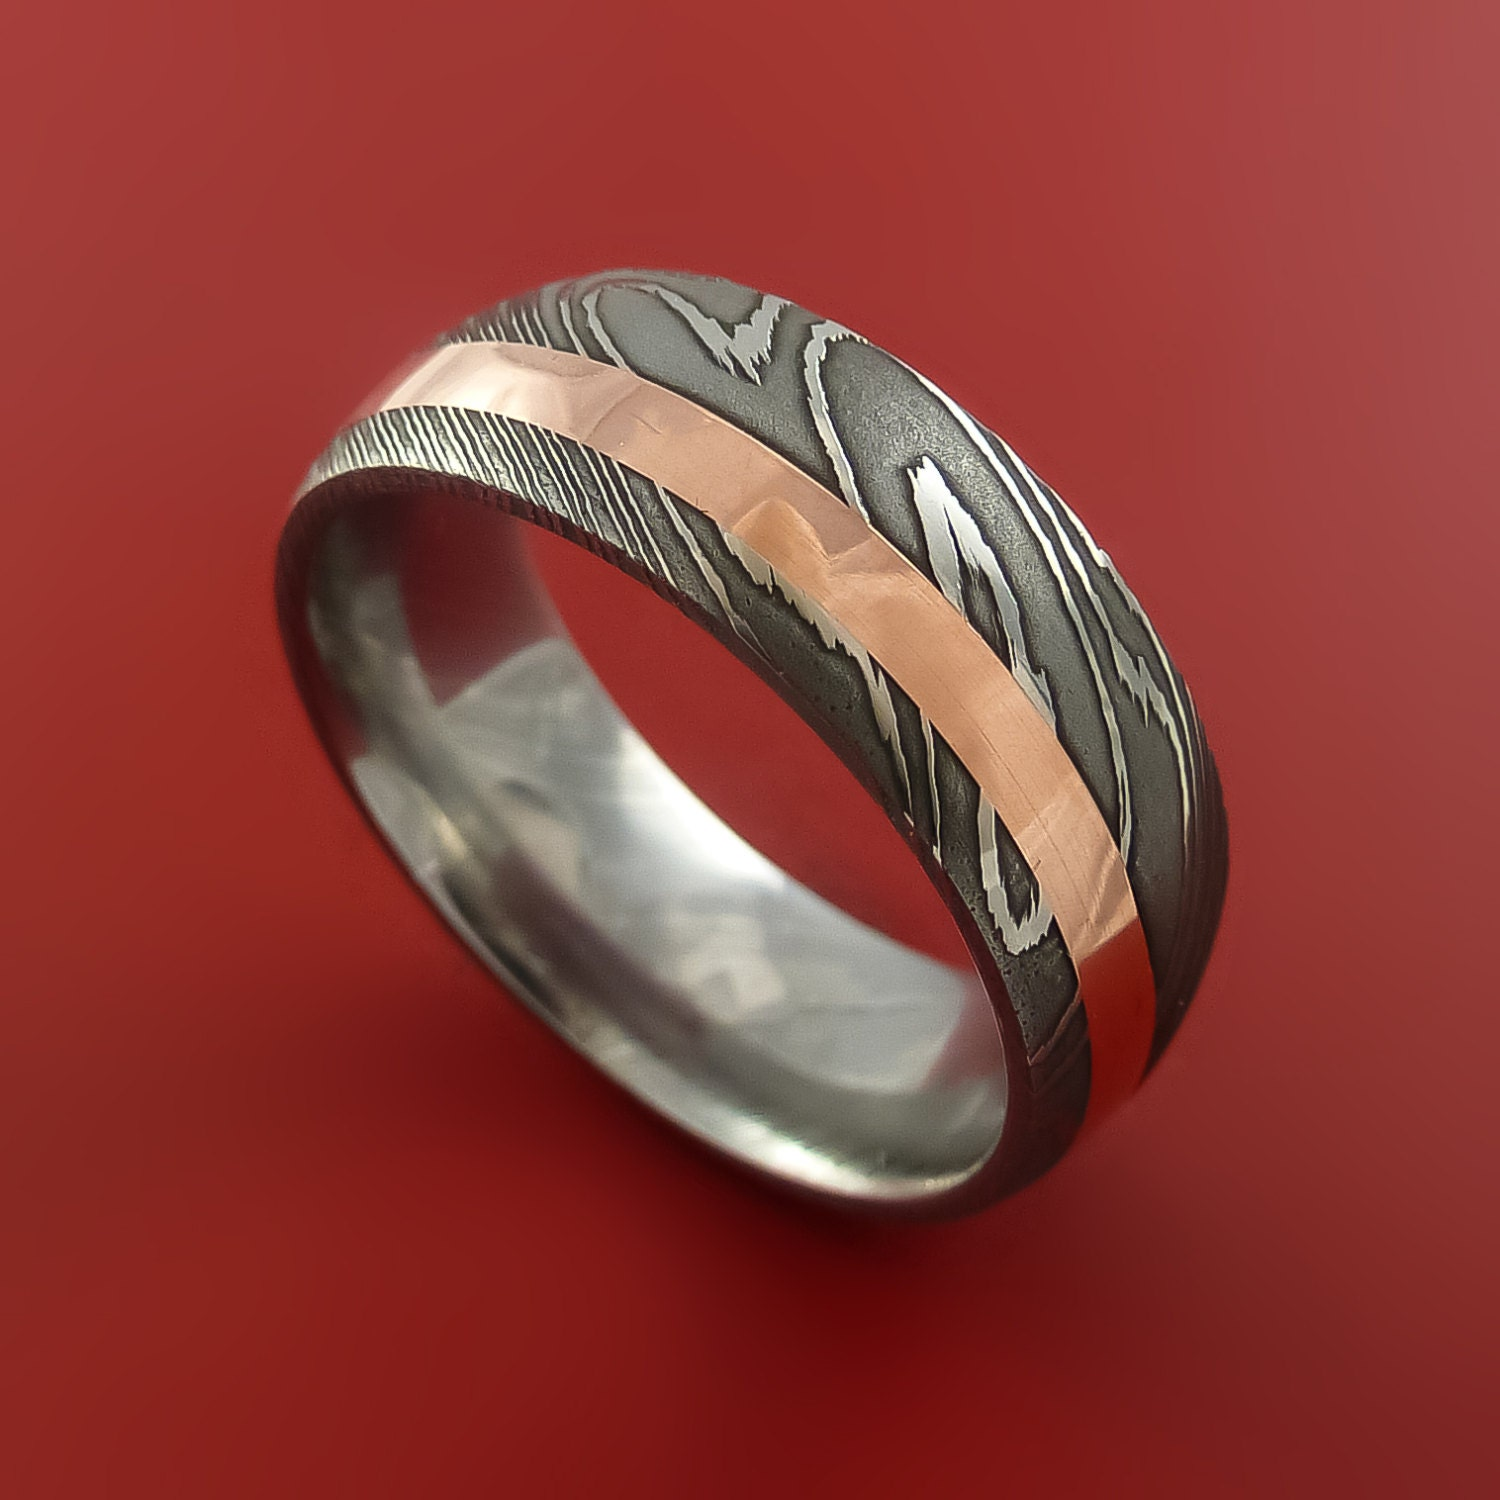 View Full Gallery Of Unique Engagement Rings Wedding Rings: Damascus Steel And Copper Ring Wedding Band Custom Made To